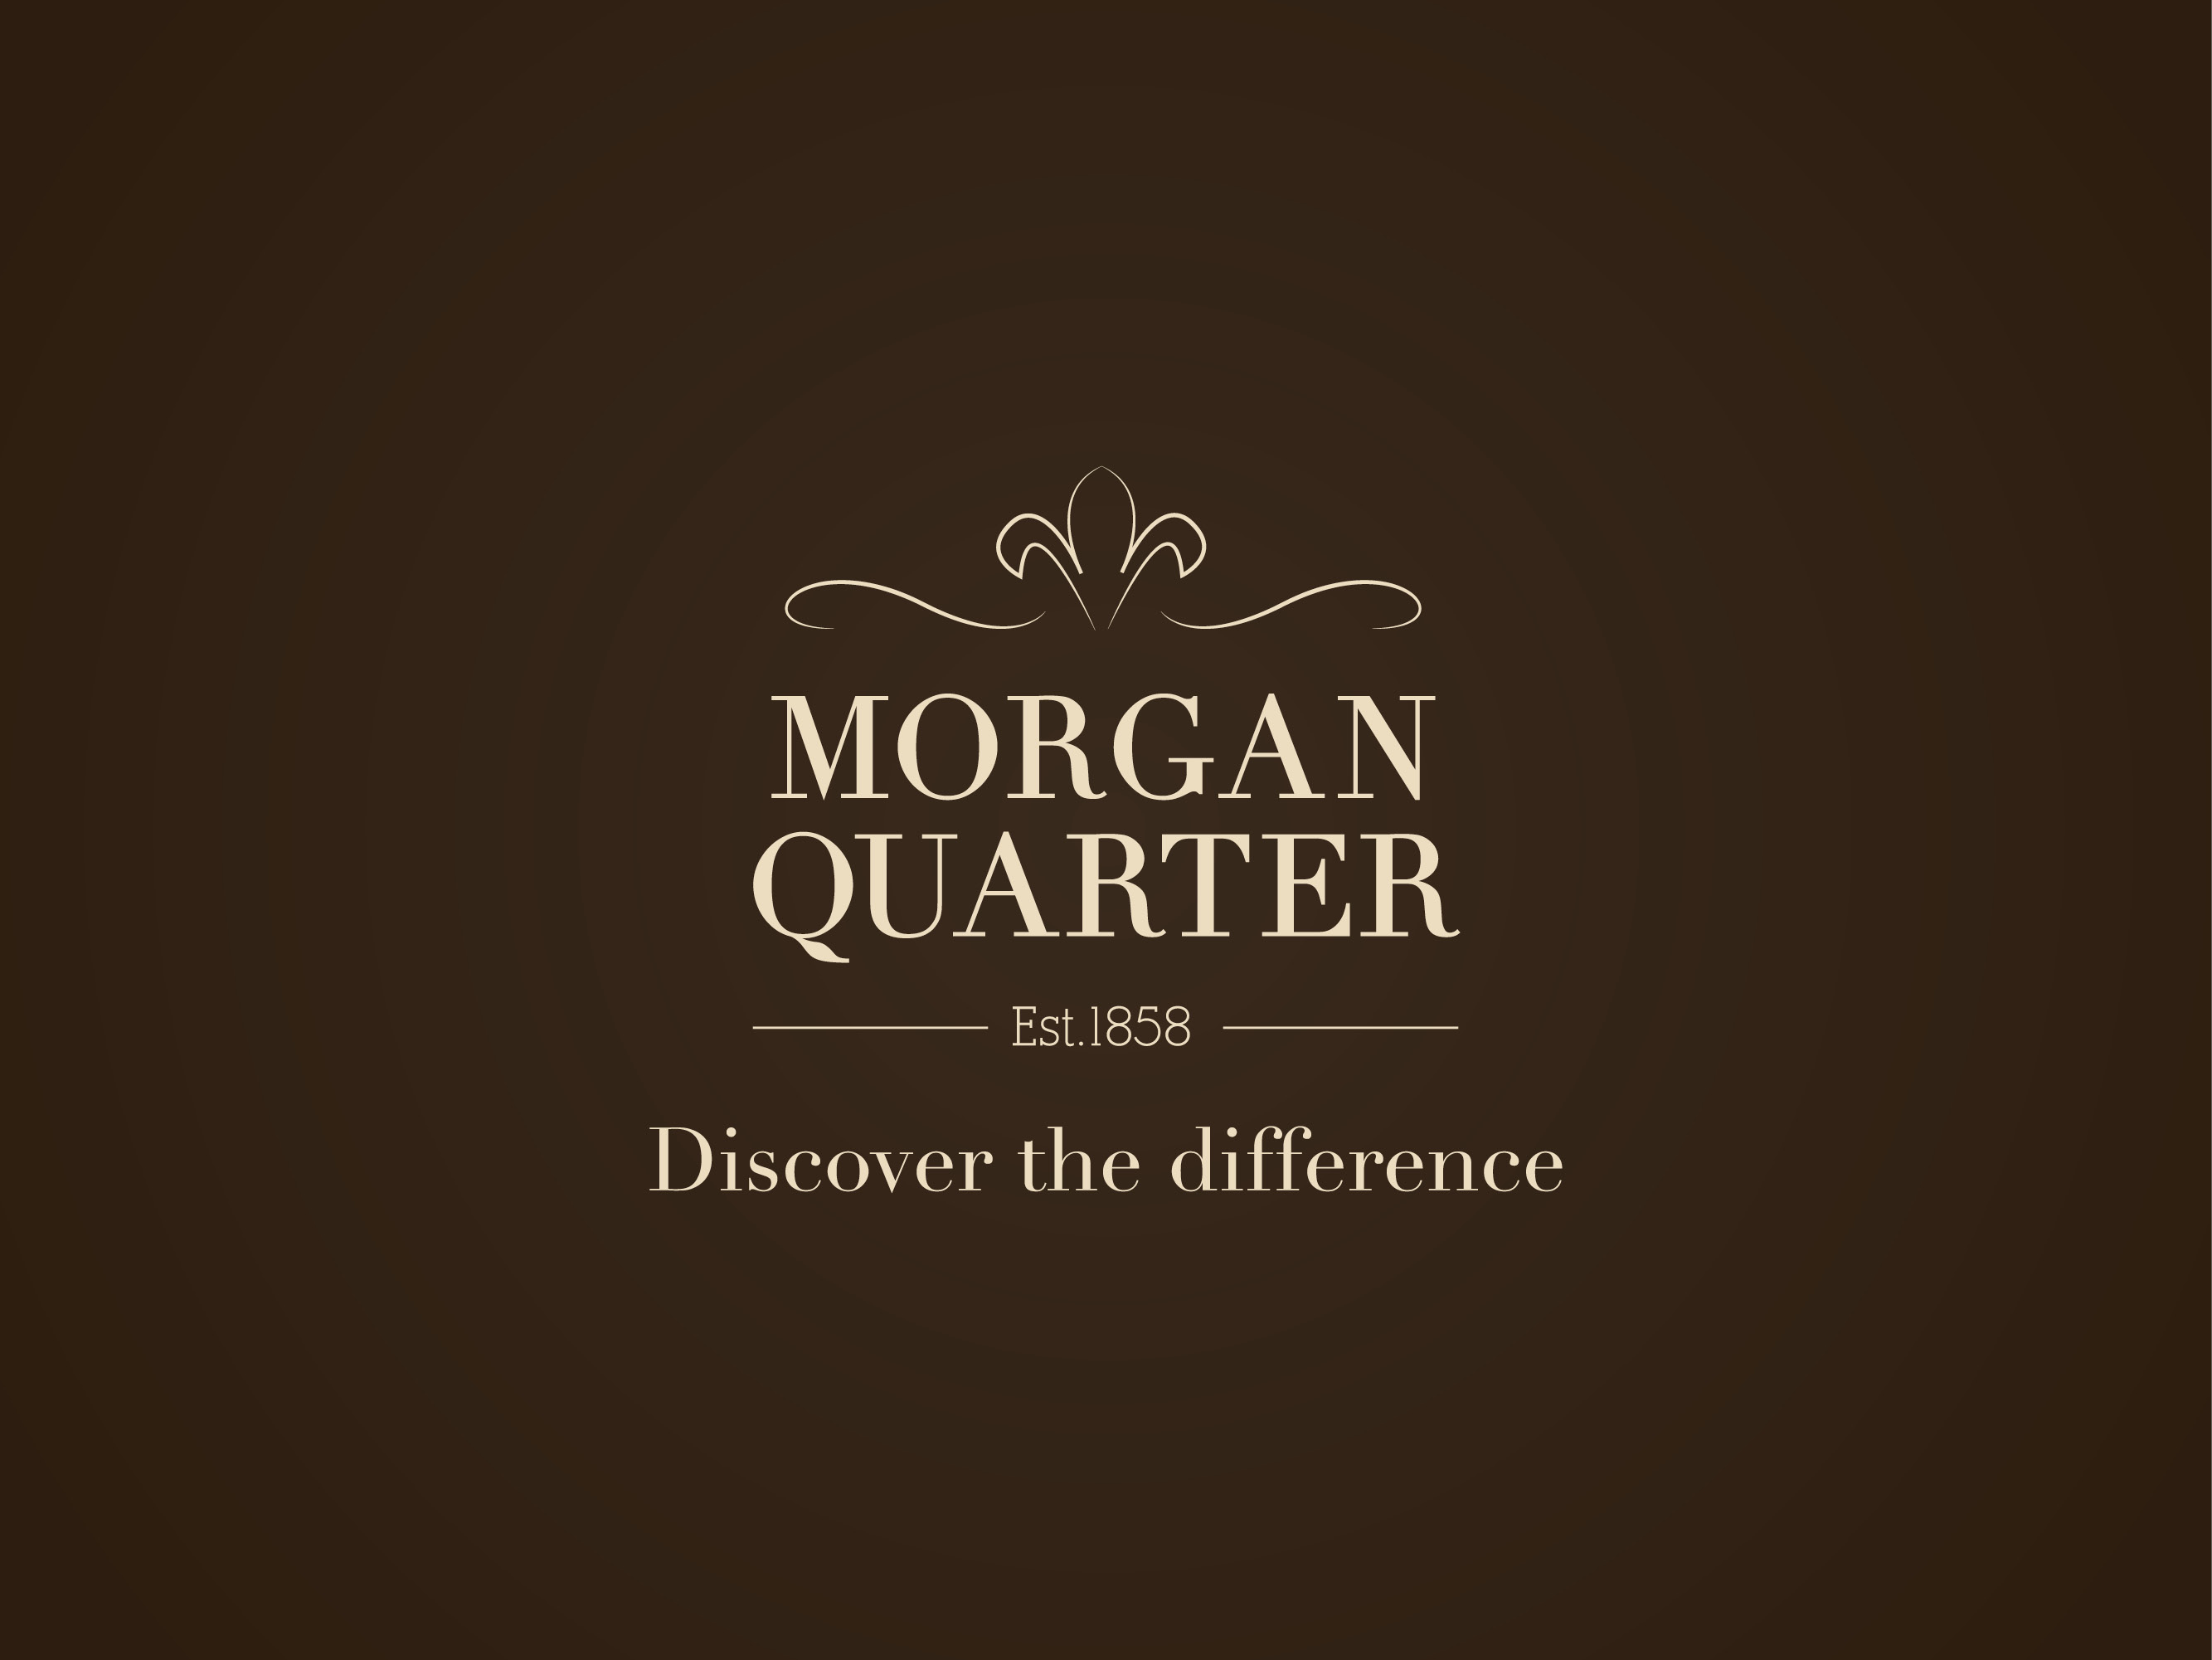 Morgan quarter luxury shopping Cardiff logo design